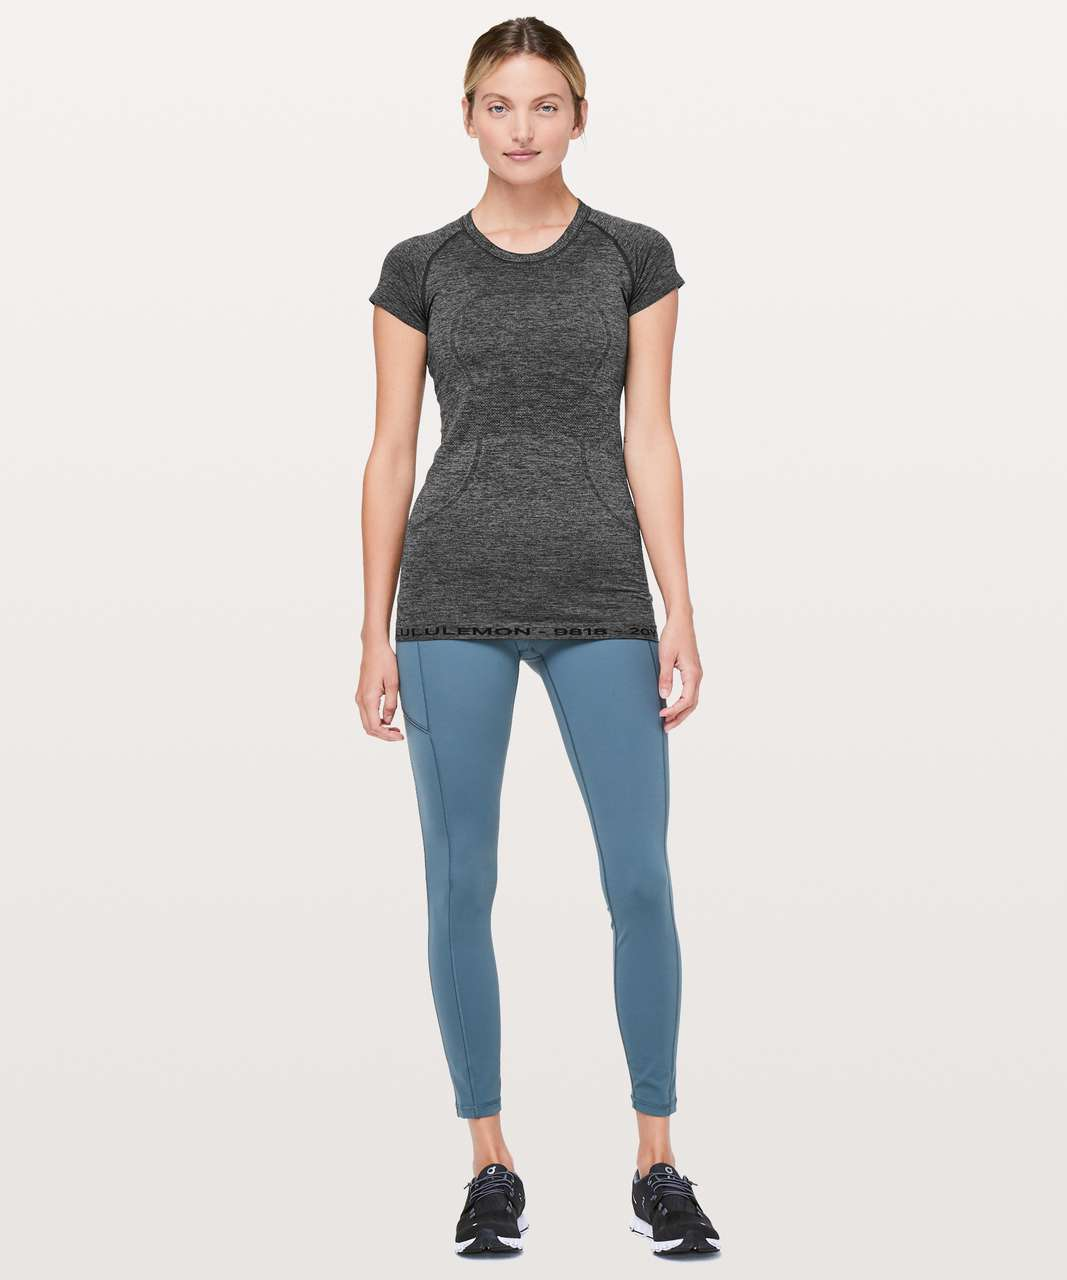 Lululemon Swiftly Tech Short Sleeve Crew *20Y Collection - Black / Anchor